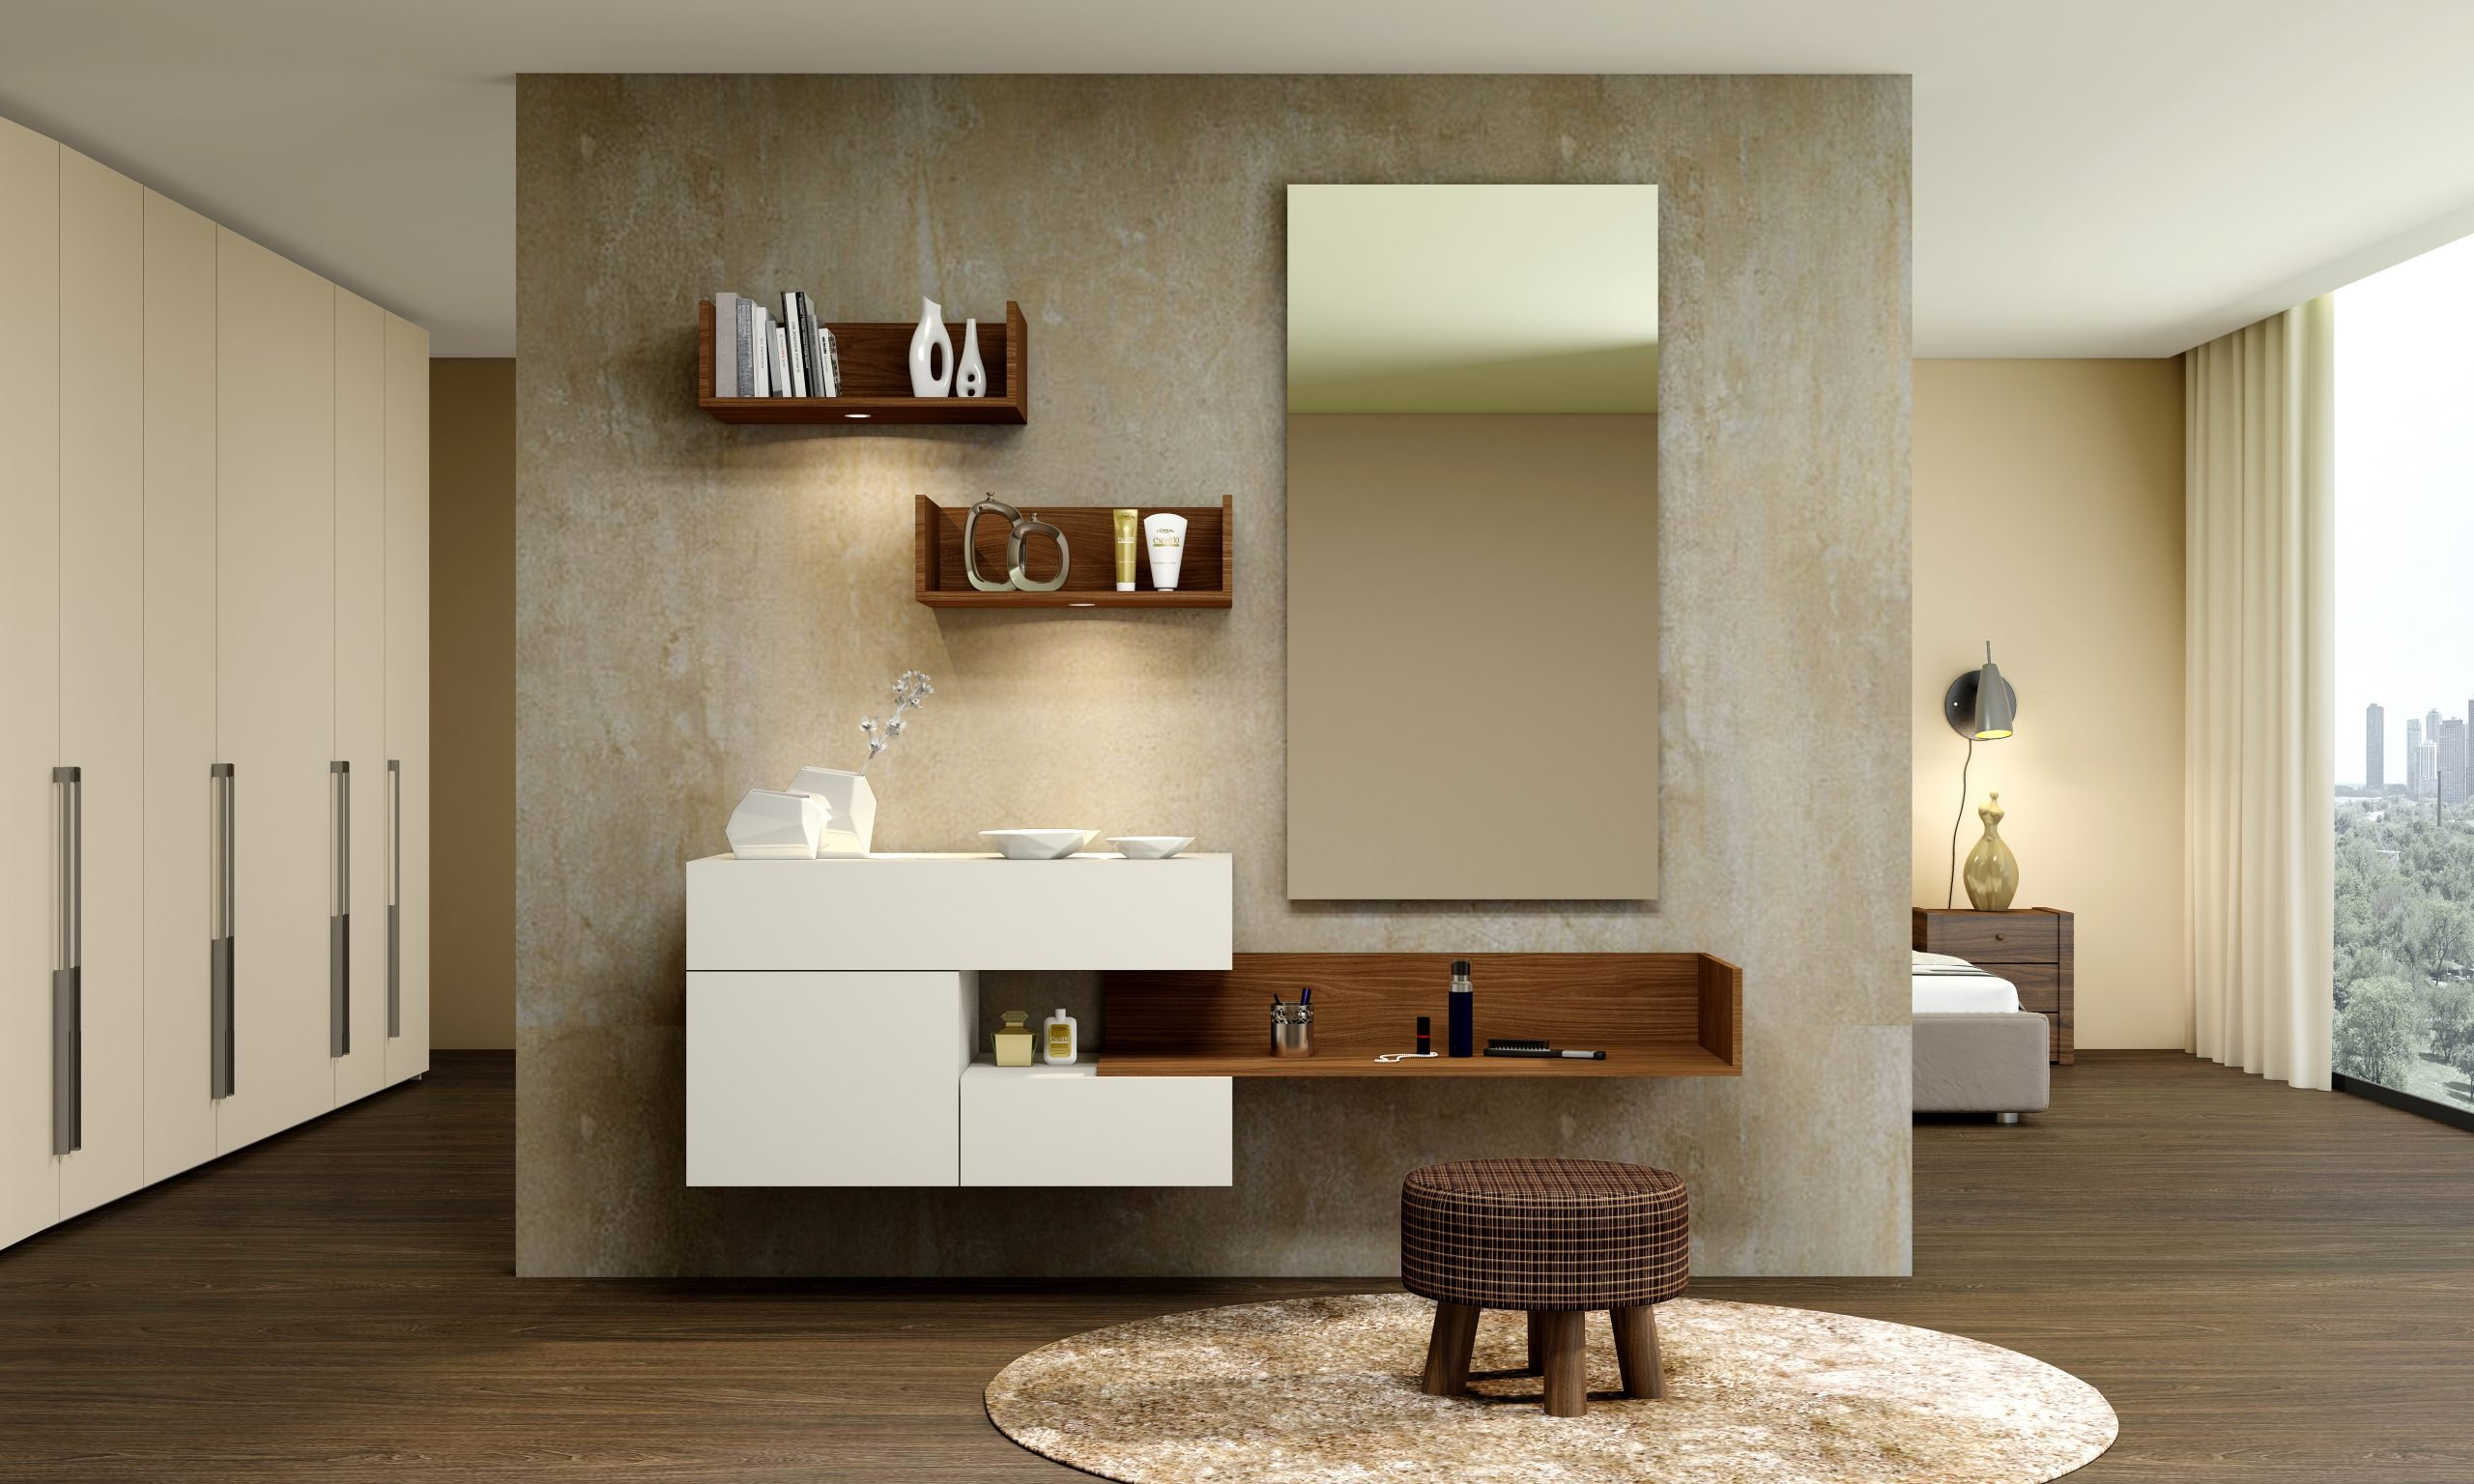 Bespoke dressing table with custom Storage in Light grey and Lincoln walnut finish